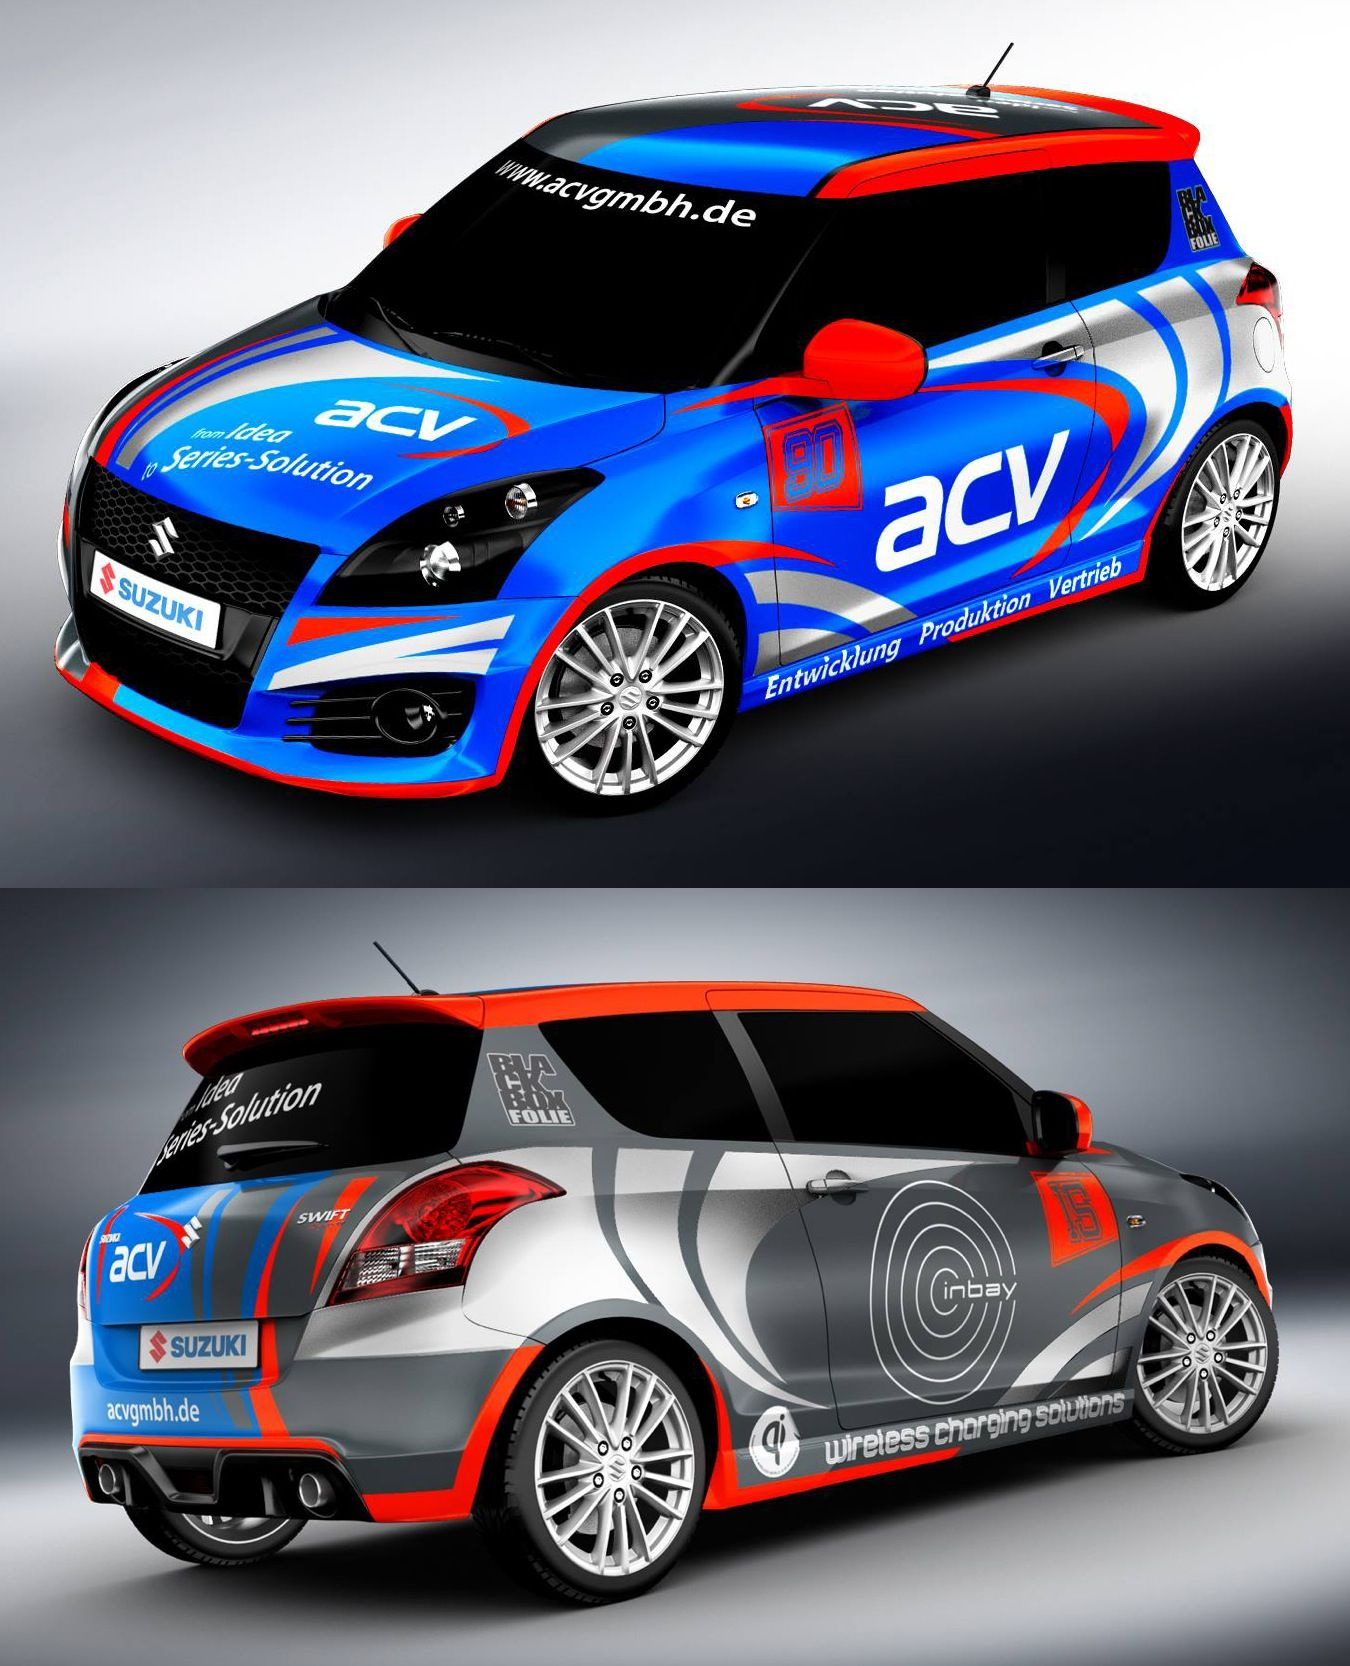 Suzuki swift asymmetric racing livery design we collect and generate ideas ufx dk